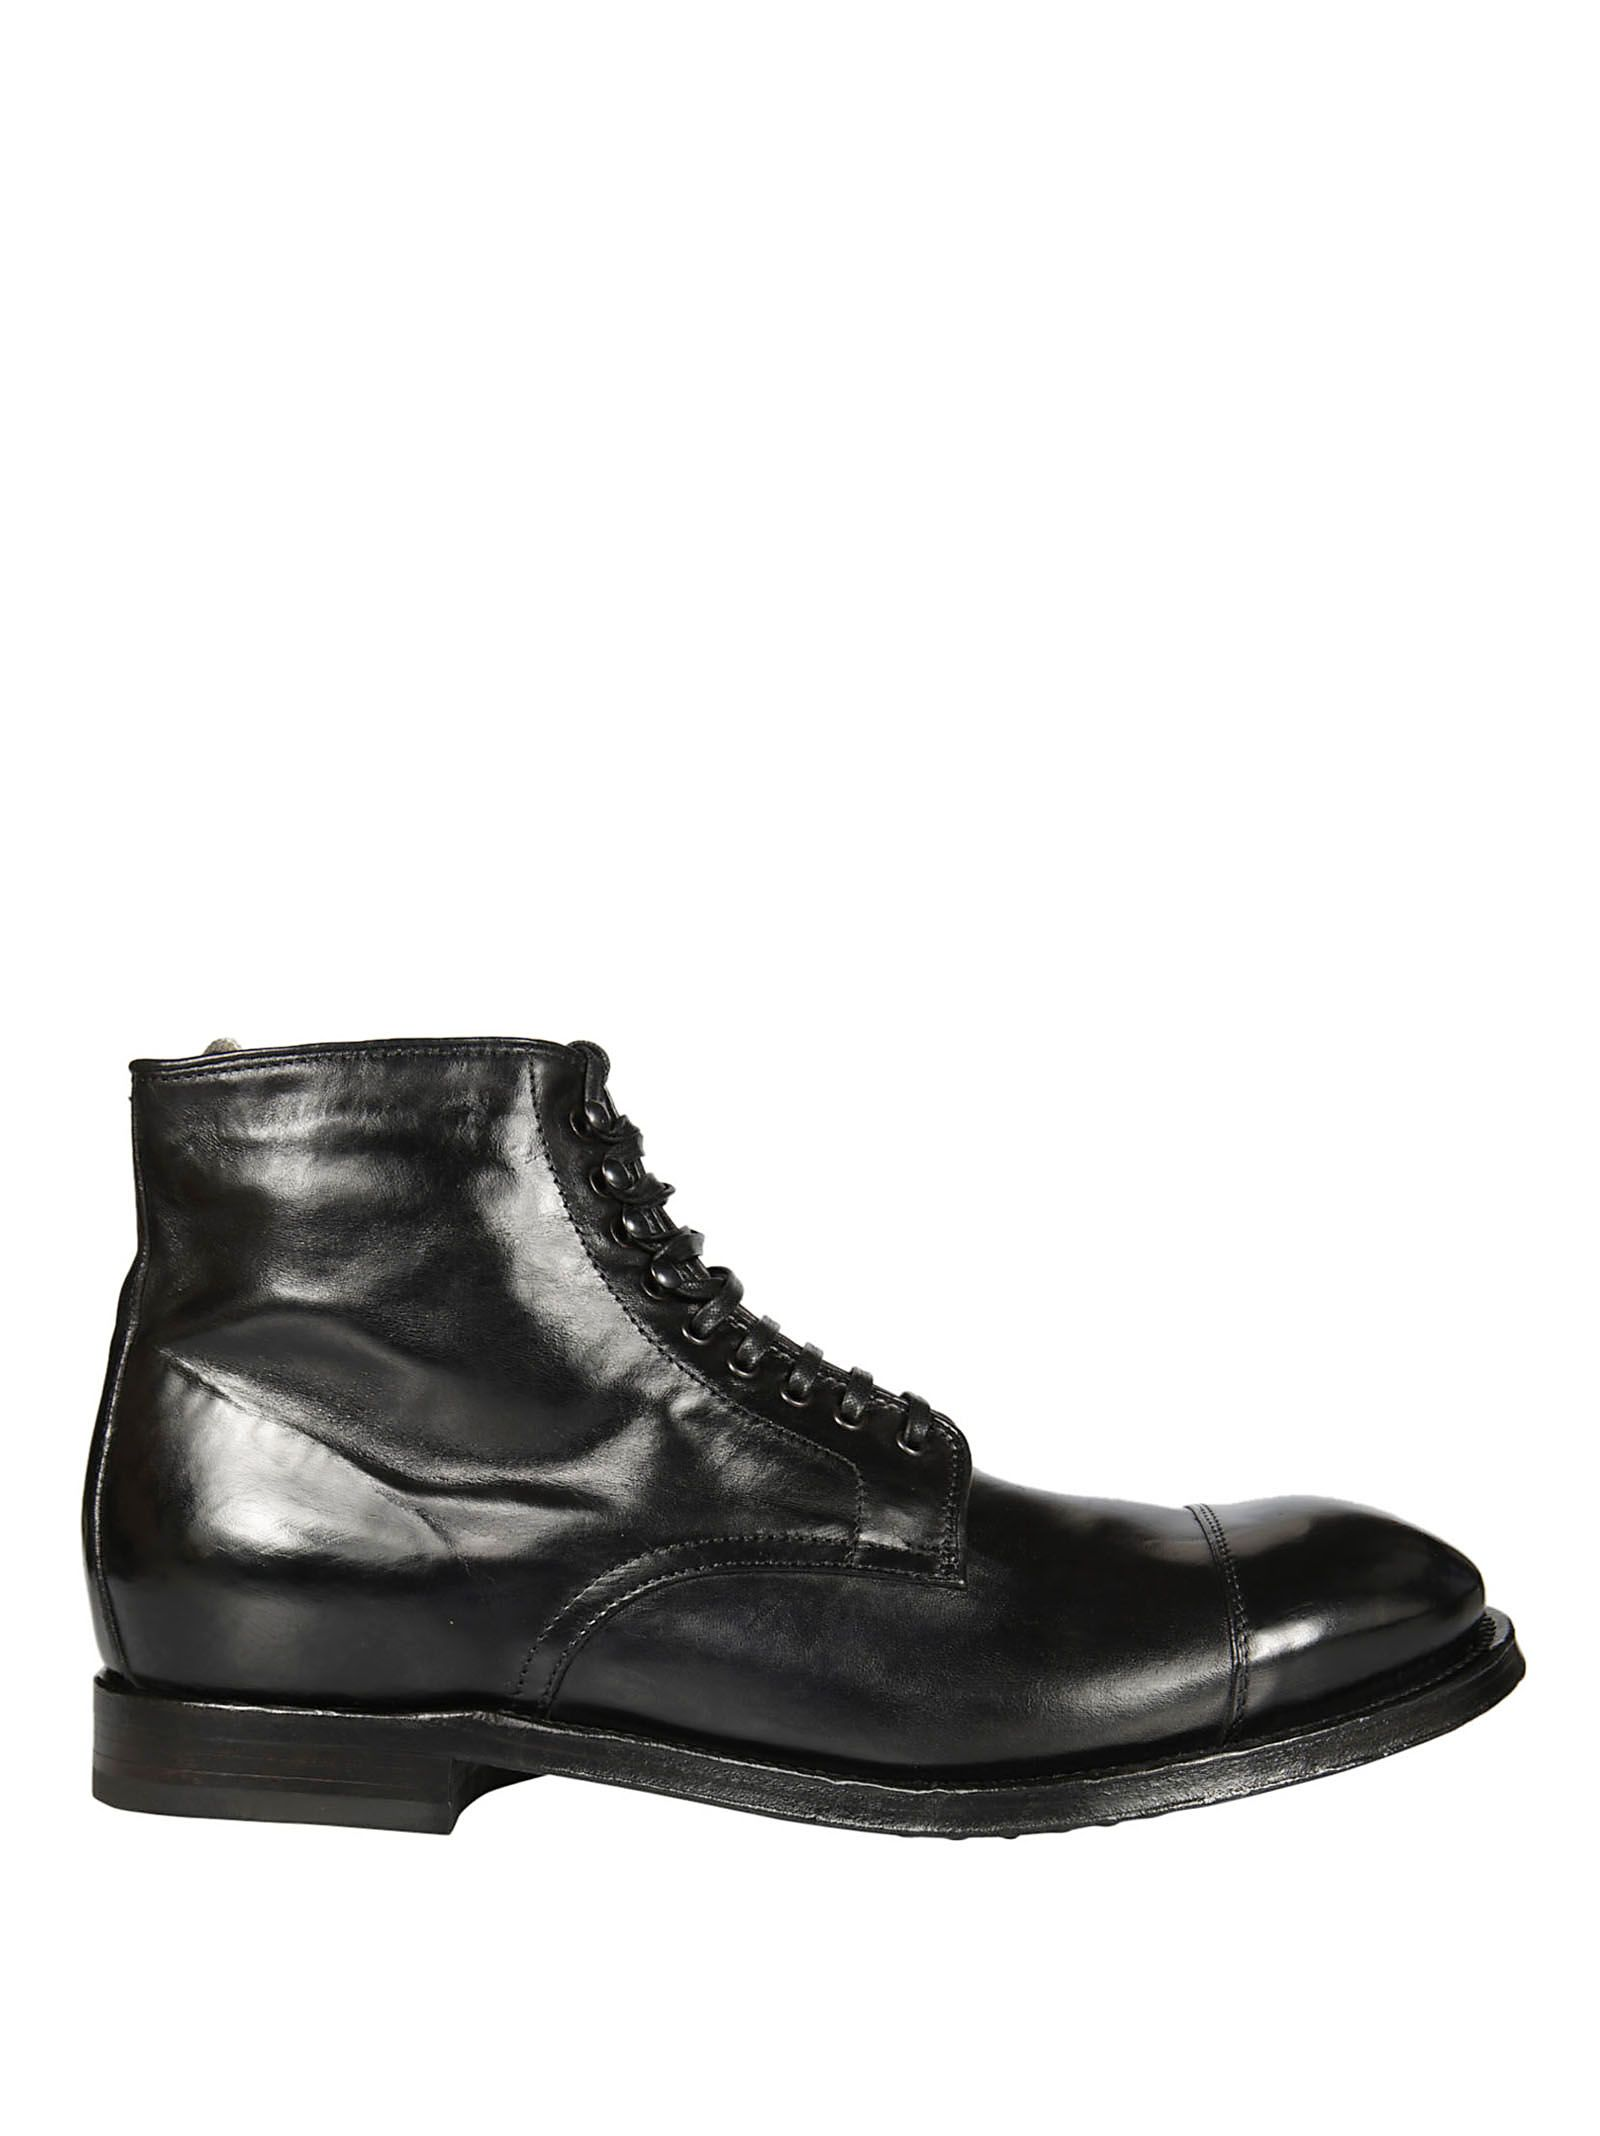 Officine Creative williams 007 Lace- Up Boots